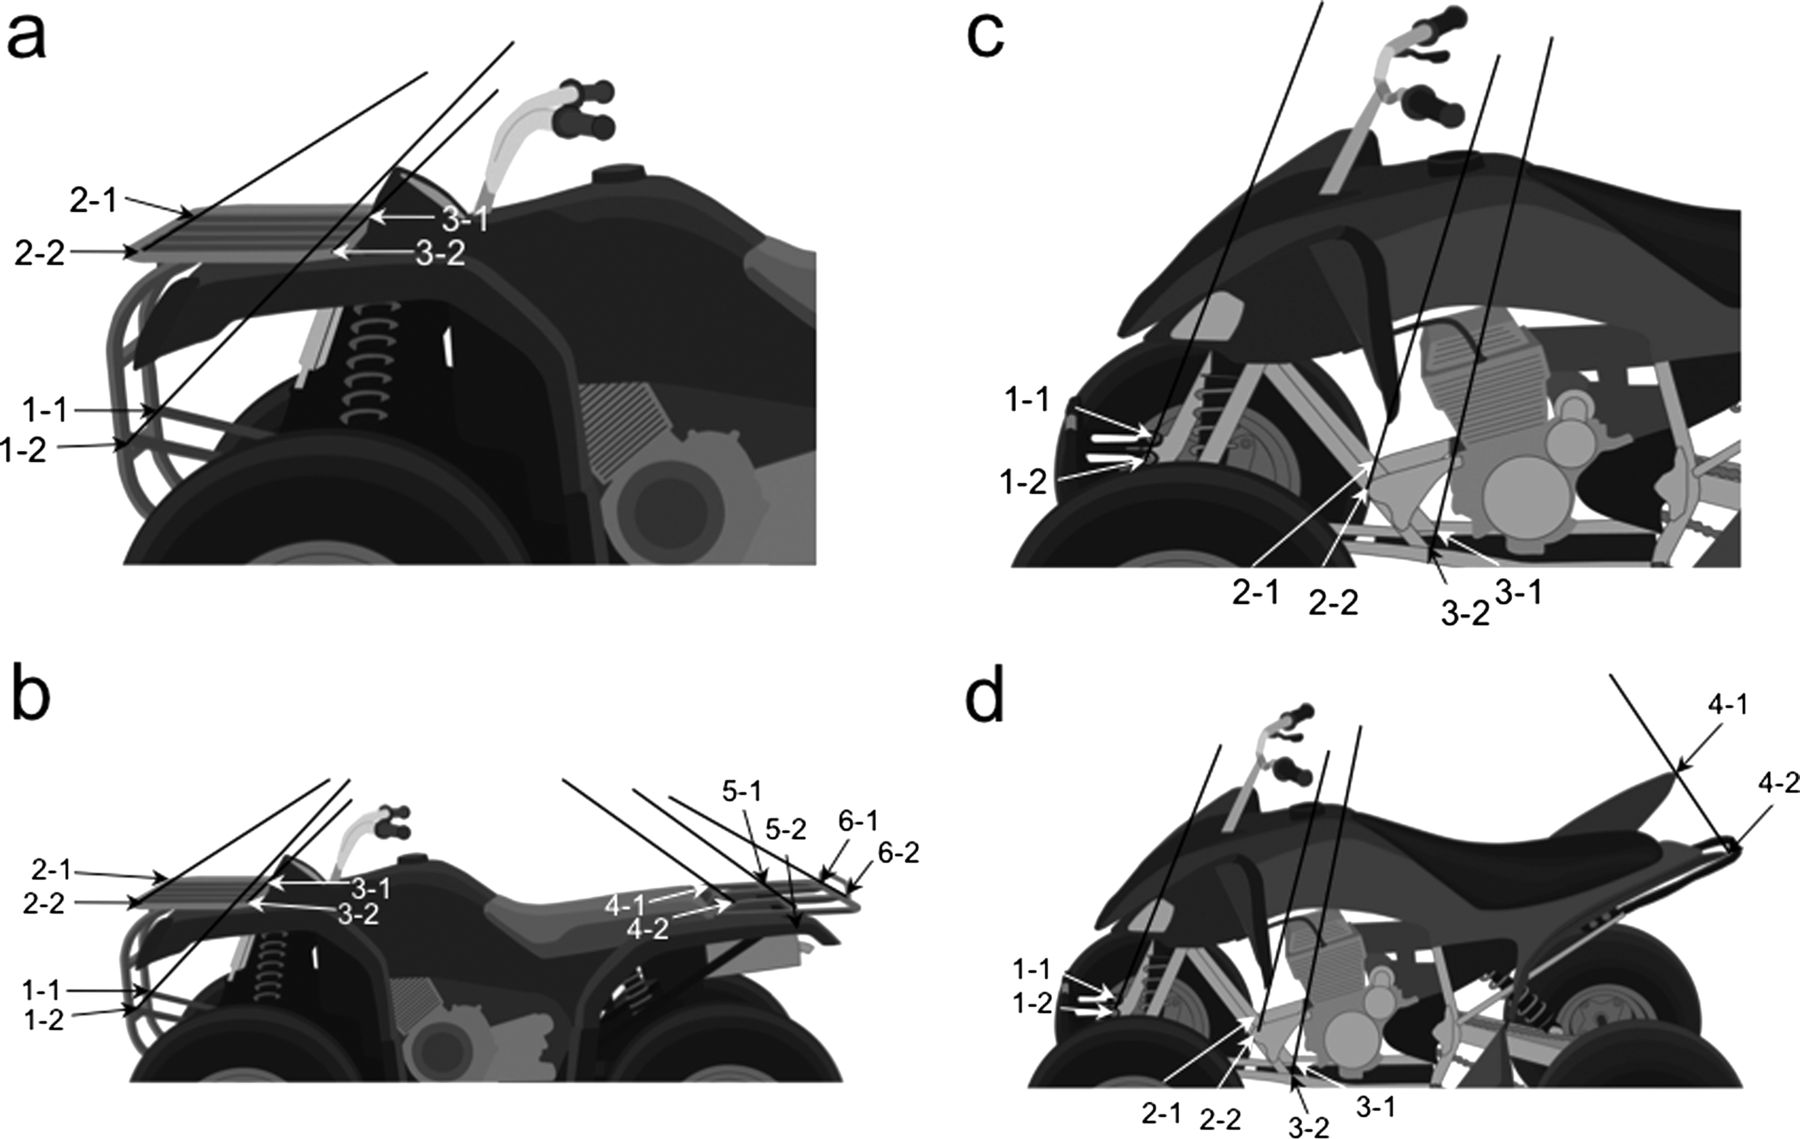 bcd8ffdedf9f An image-based method to measure all-terrain vehicle dimensions for ...